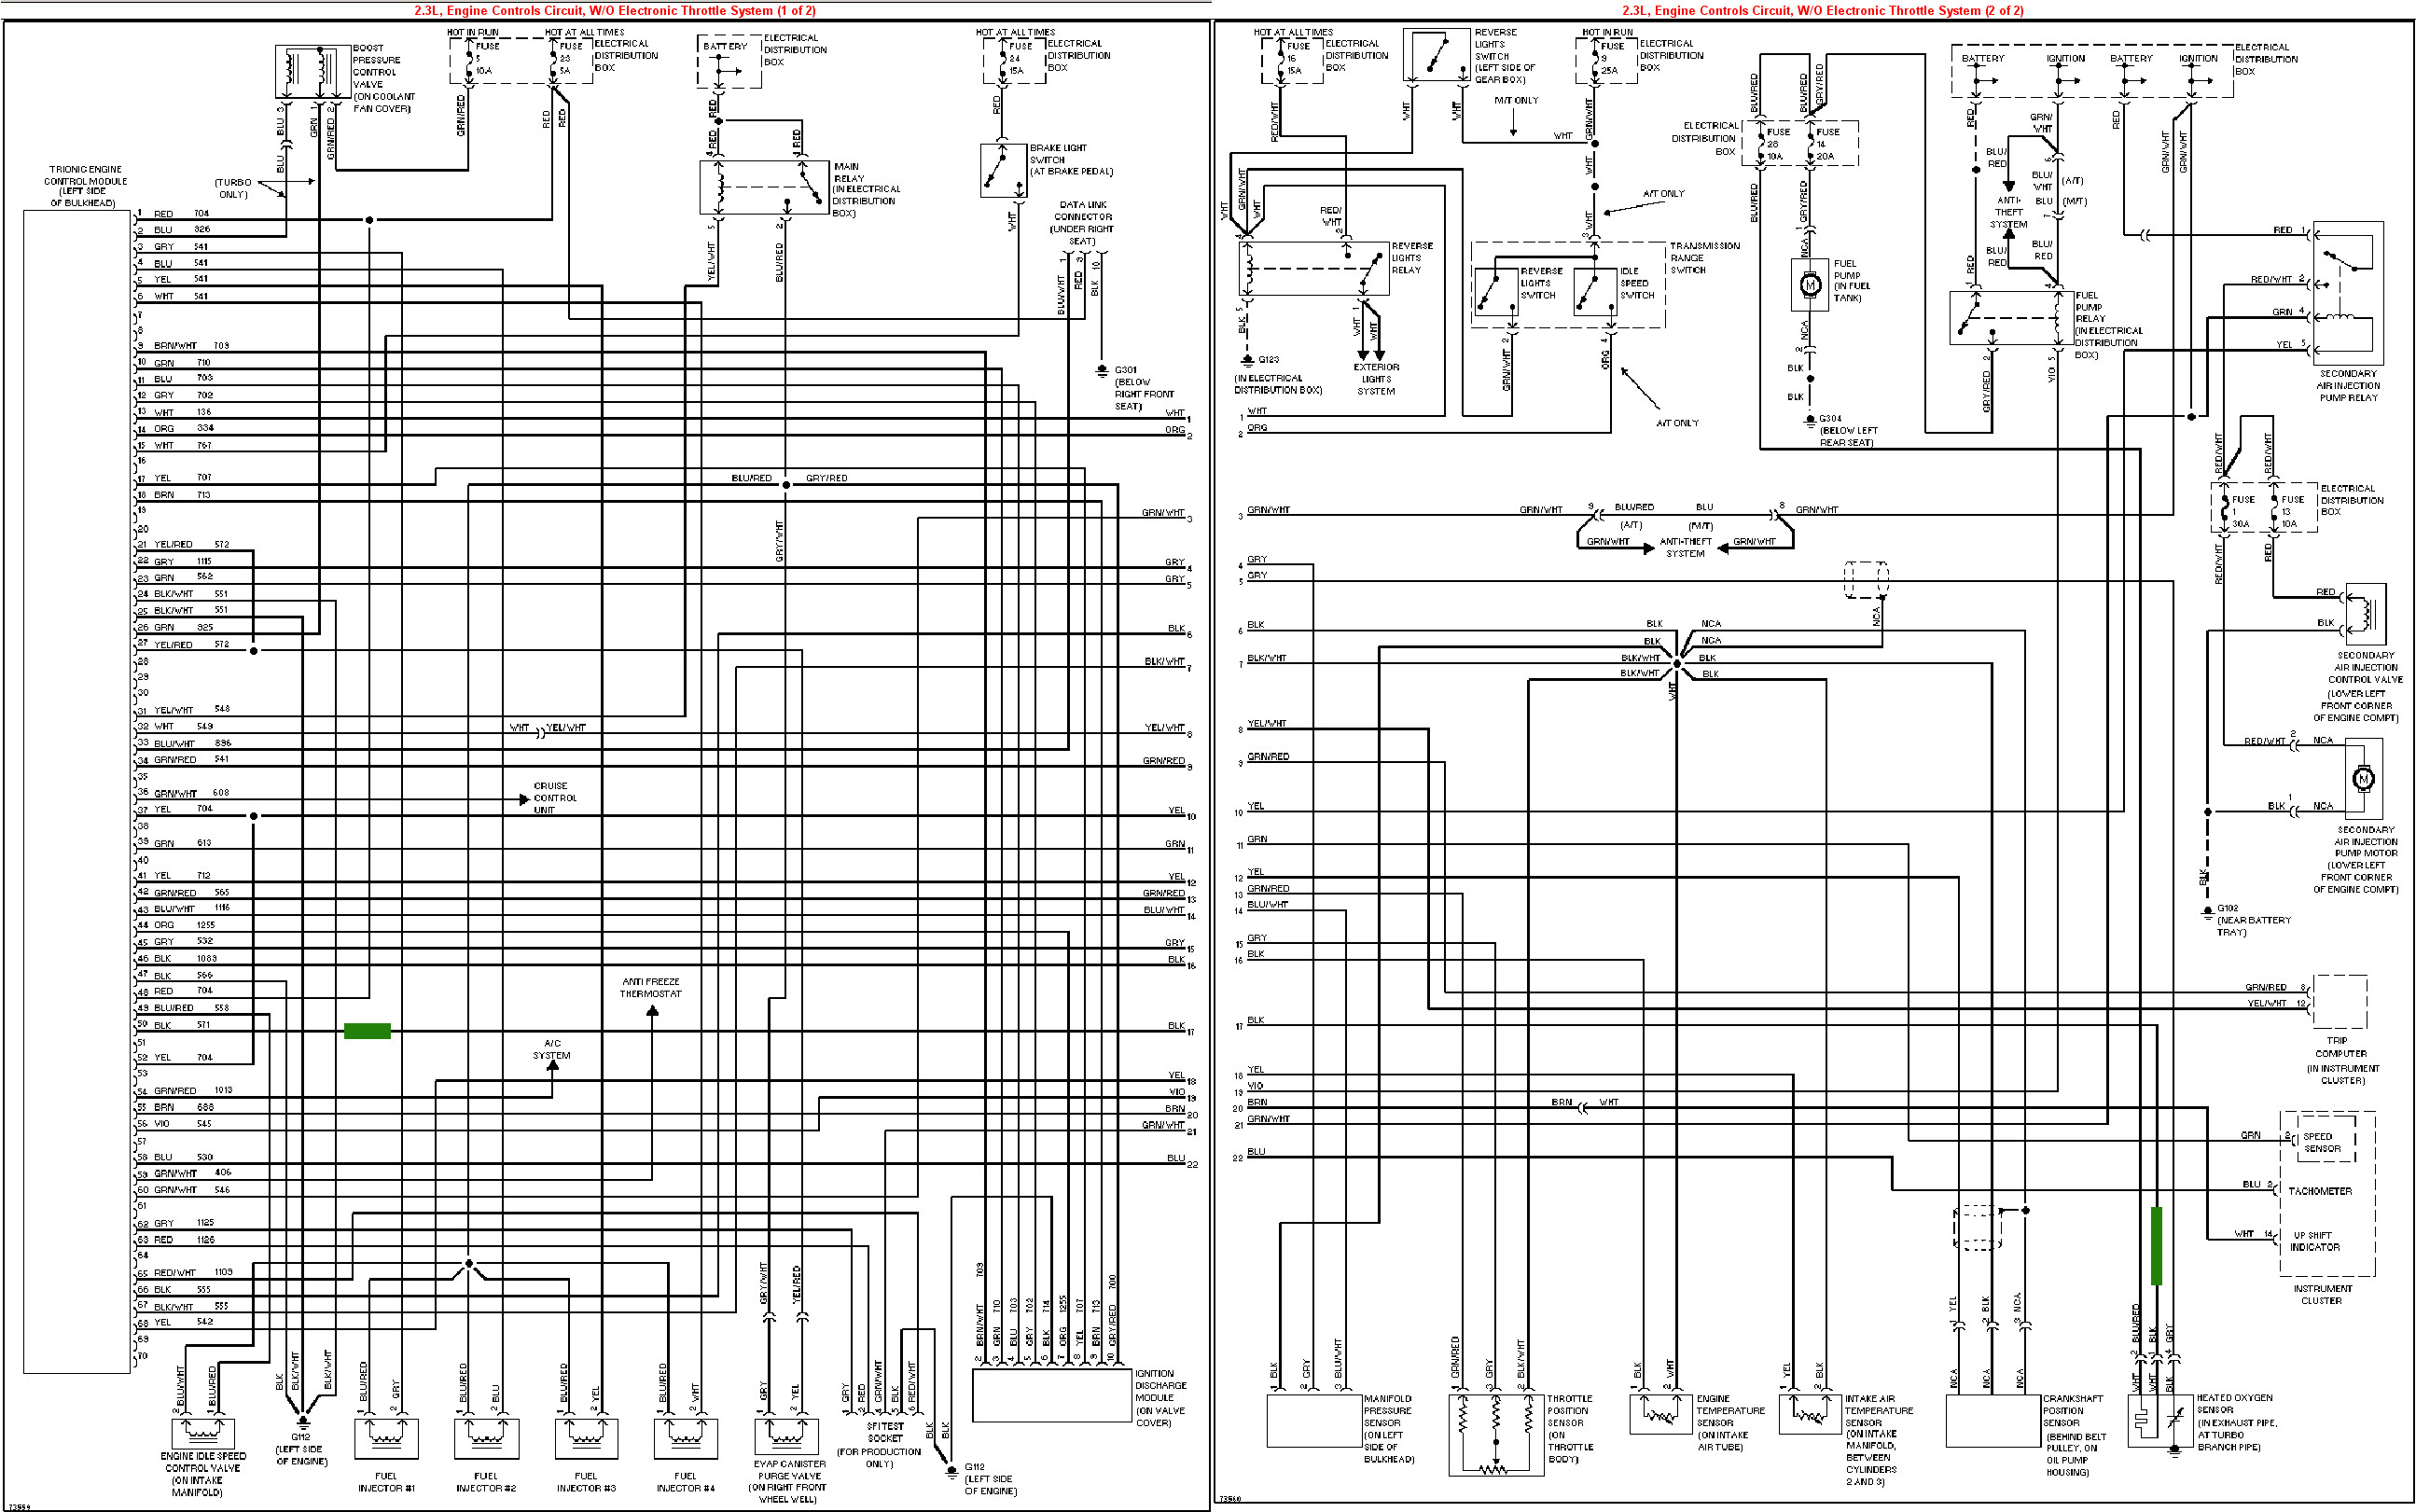 Diagram Saab 93 1 9 Tid Wiring Diagram Full Version Hd Quality Wiring Diagram Wiringdiagramk Queidue It